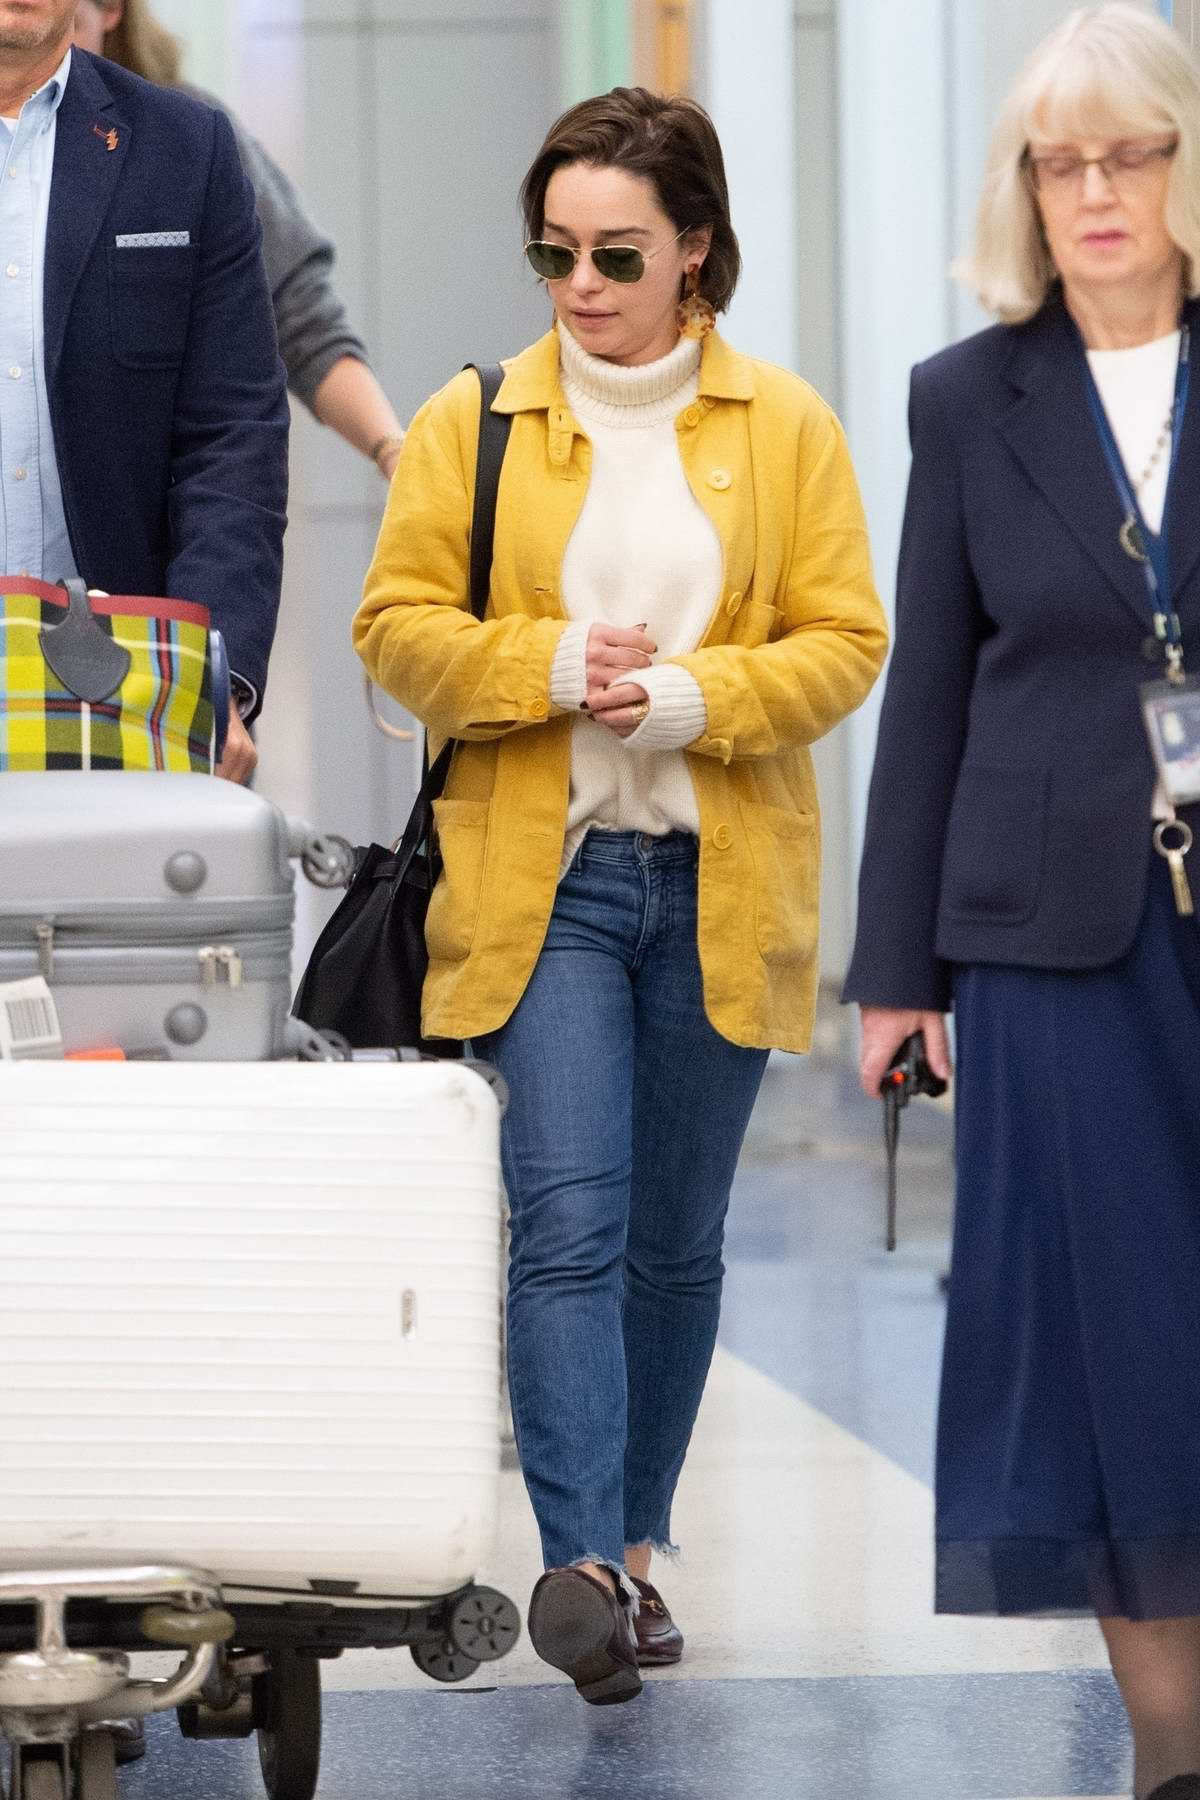 Emilia Clarke stand out in a yellow coat as she arrives at JFK airport in New York City